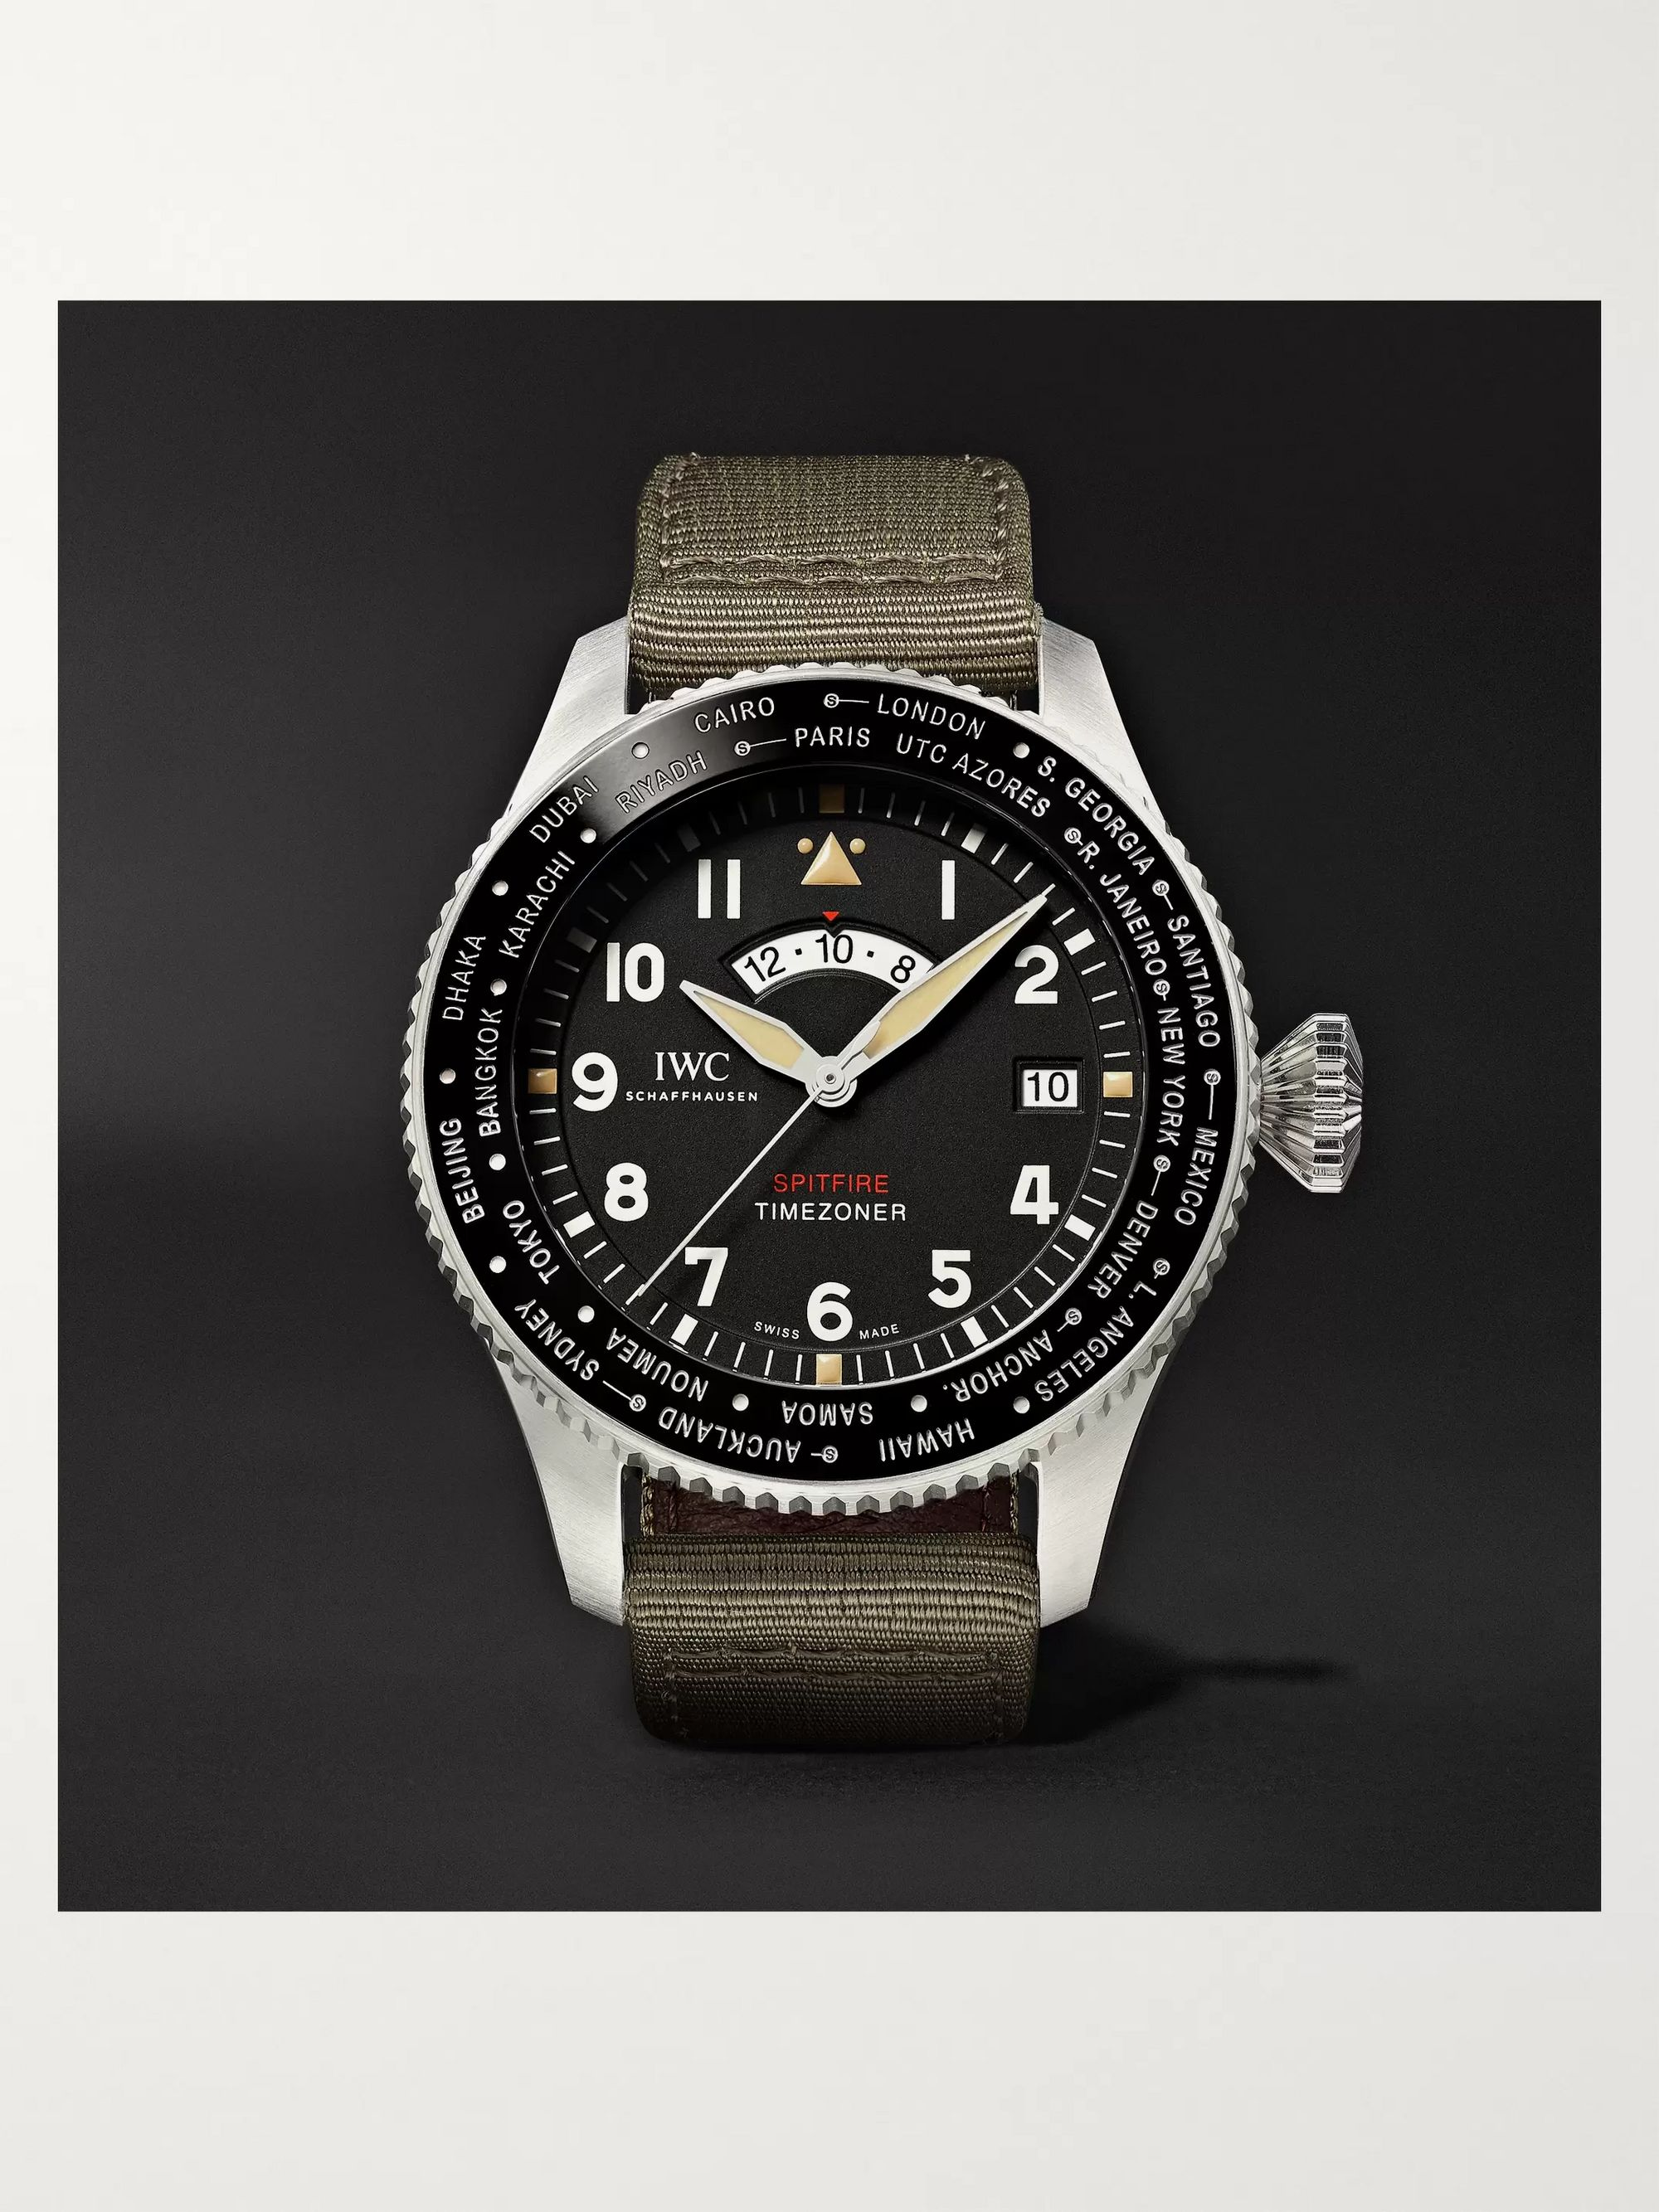 Pilot's Timezoner Spitfire The Longest Flight Automatic 46mm Stainless Steel And Leather Backed Webbing Watch, Ref. No. Iw395501 by Iwc Schaffhausen